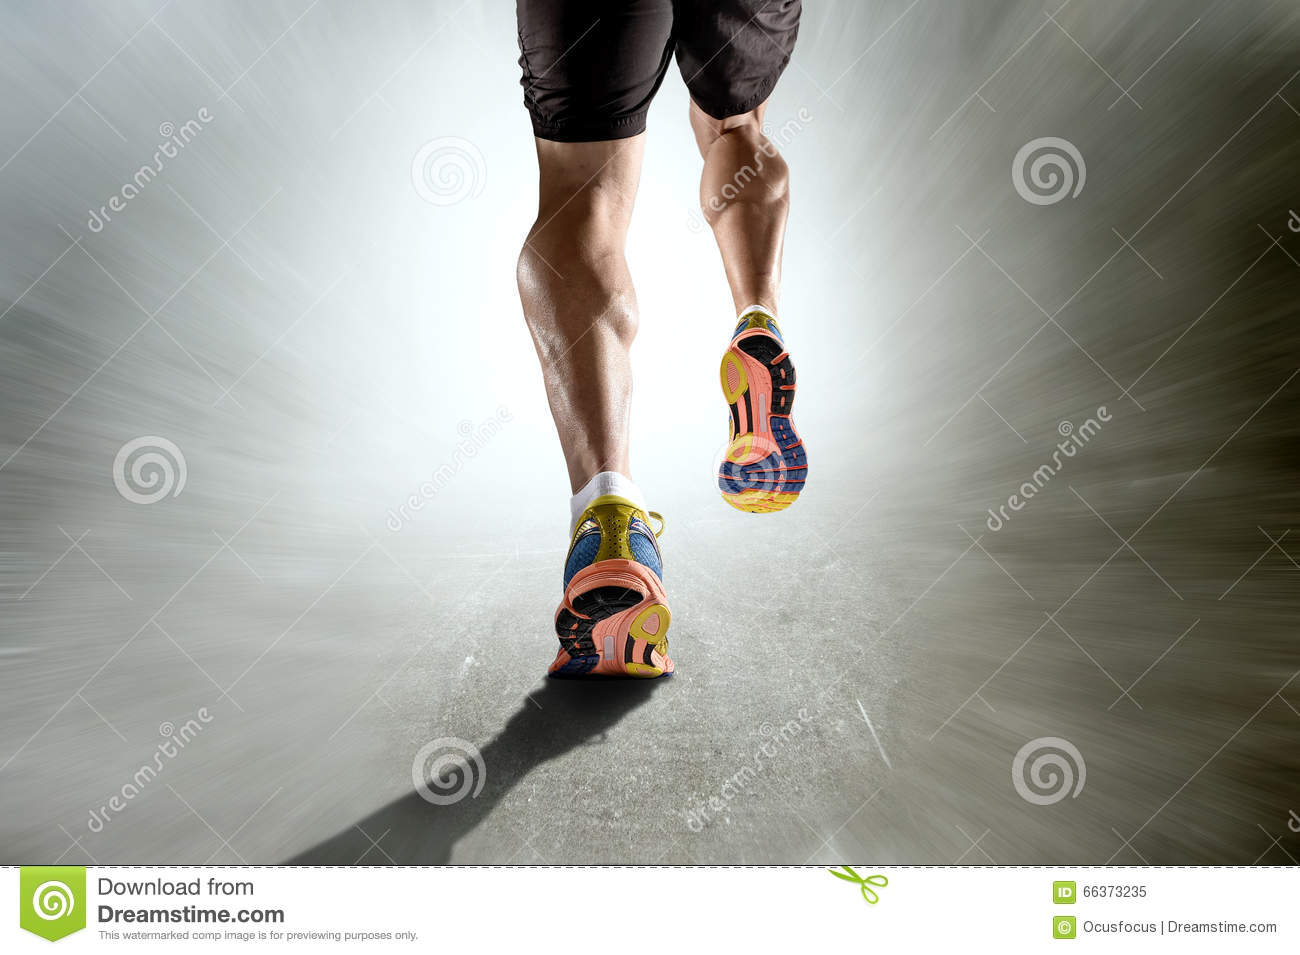 Strong athletic legs with ripped calf muscle of sport man running on motion grunge background